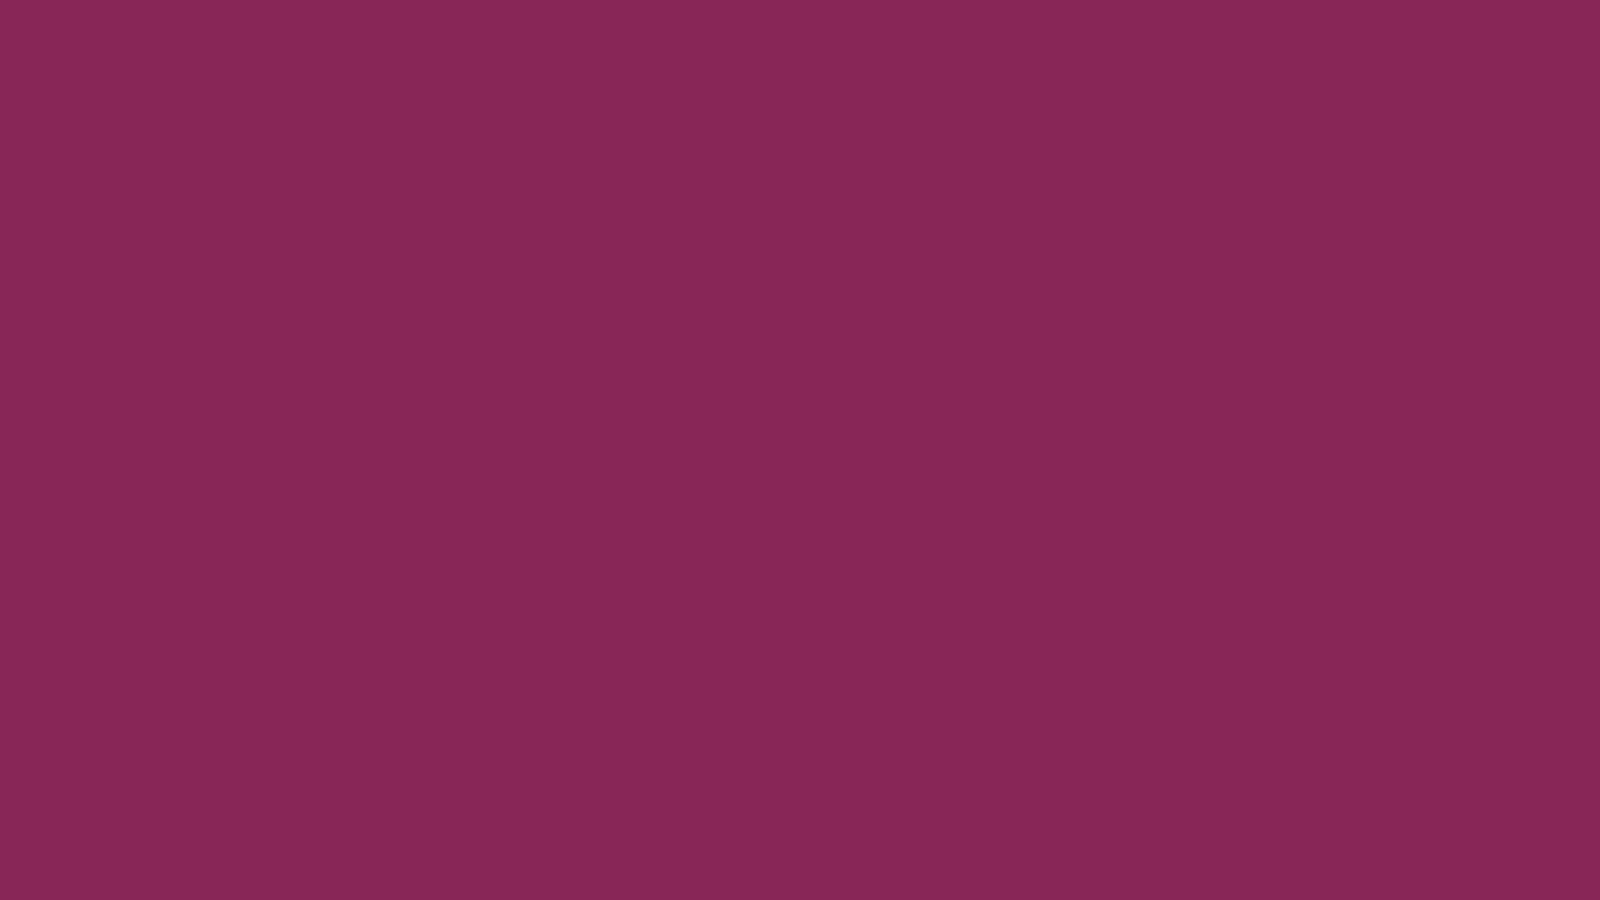 1600x900 Dark Raspberry Solid Color Background